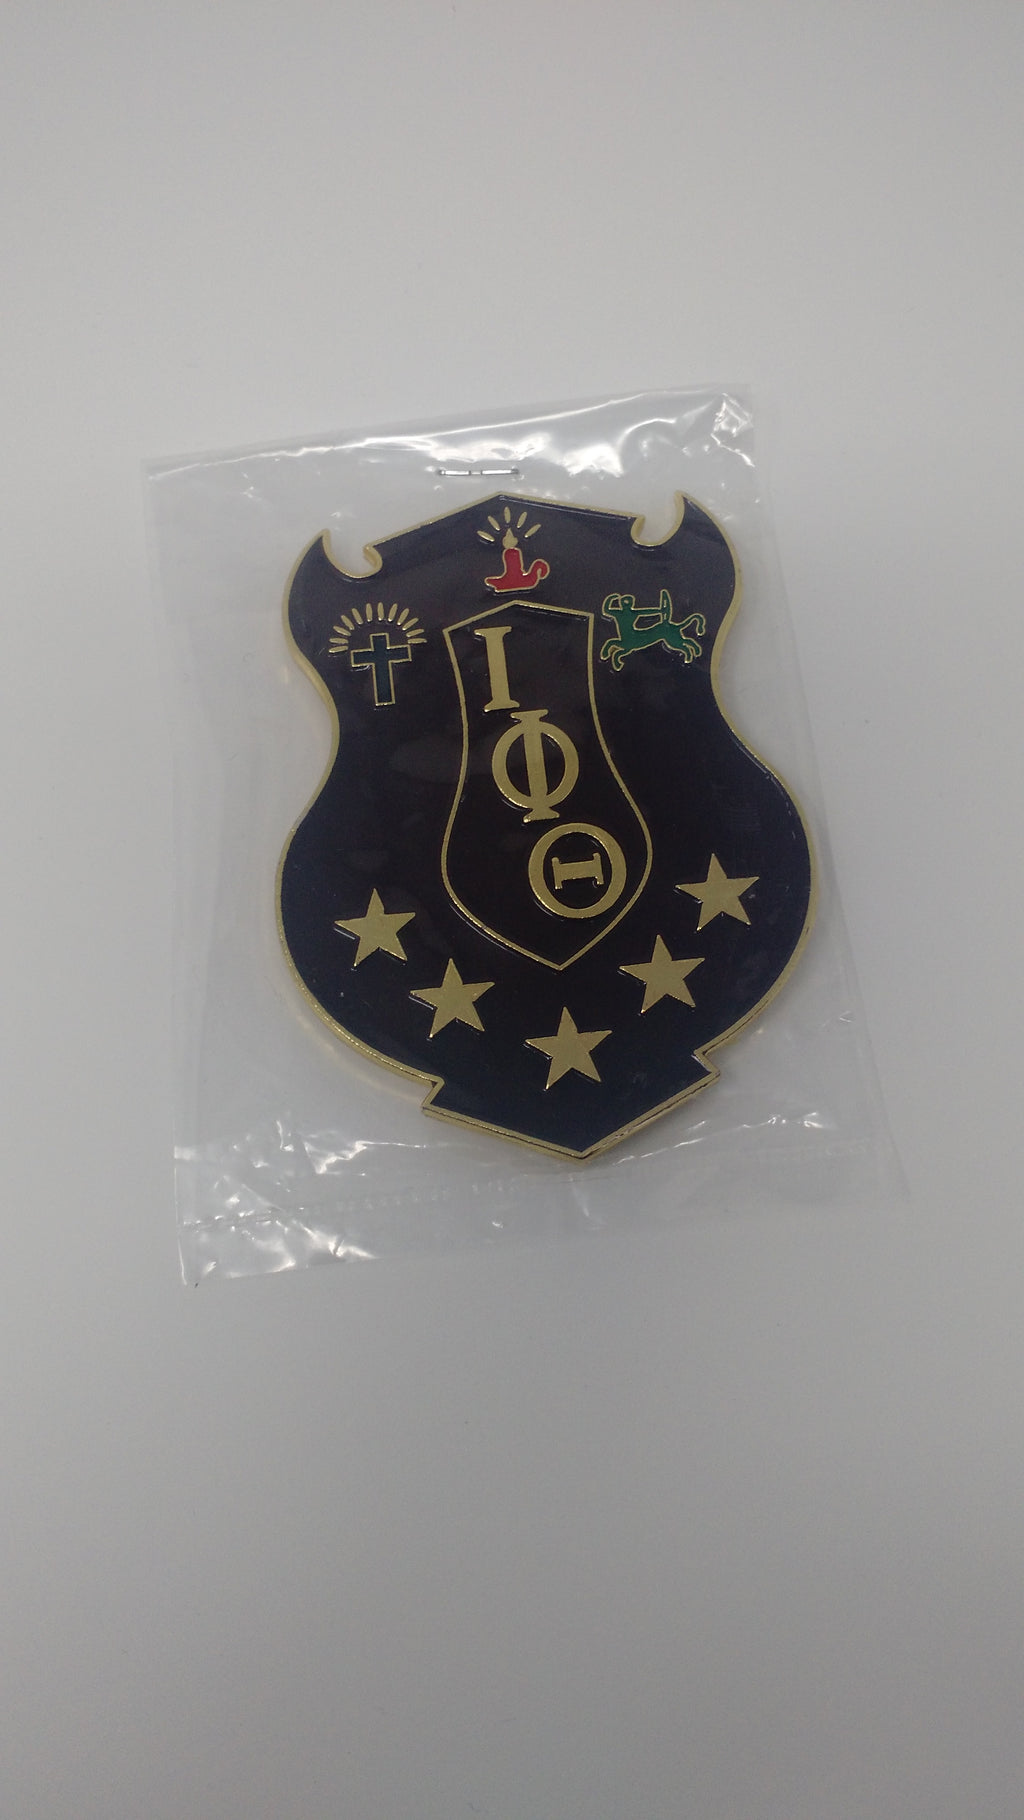 Iota Phi Theta Shield Car Badge